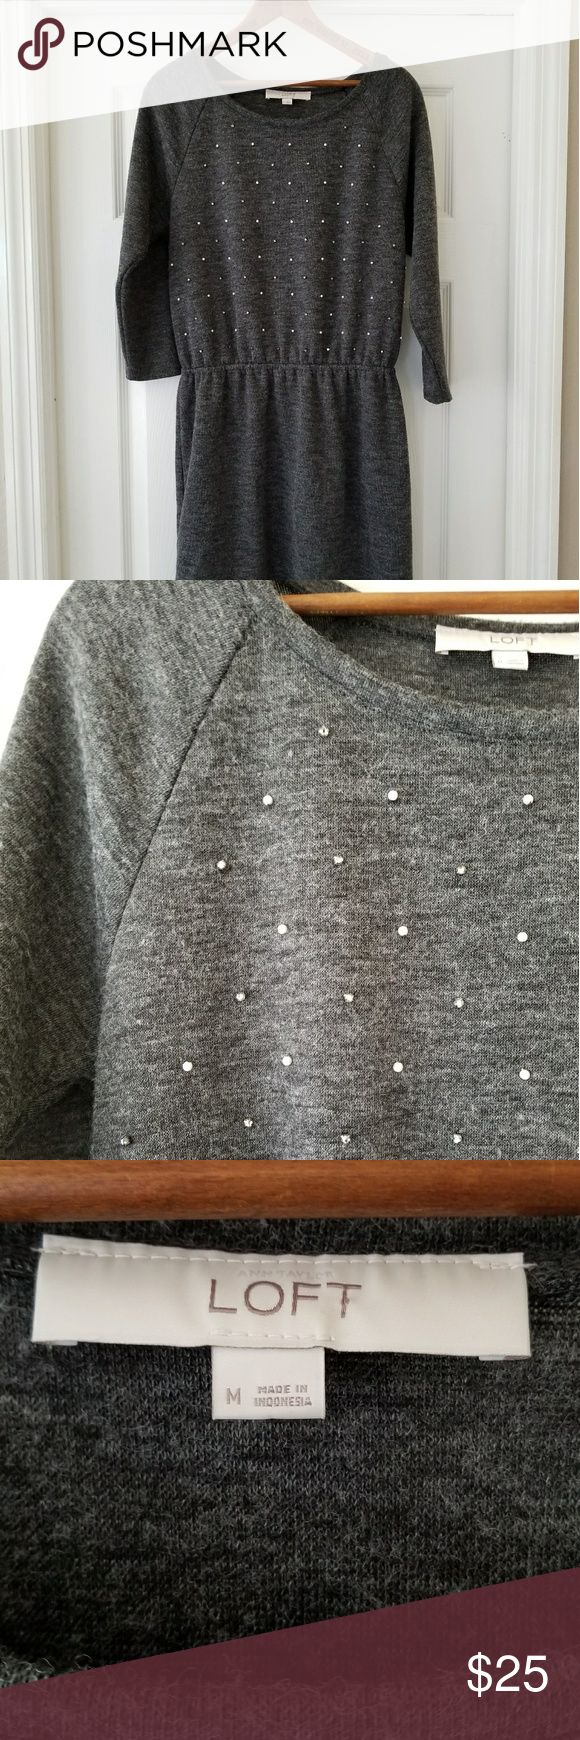 Loft bejeweled sweatshirt dress Supersoft dark heathered gray Idress with elastc waist, hits just above the knee, with pearl and rhinstone details on the bodice. Perfect for the holidays.EUC. LOFT Dresses